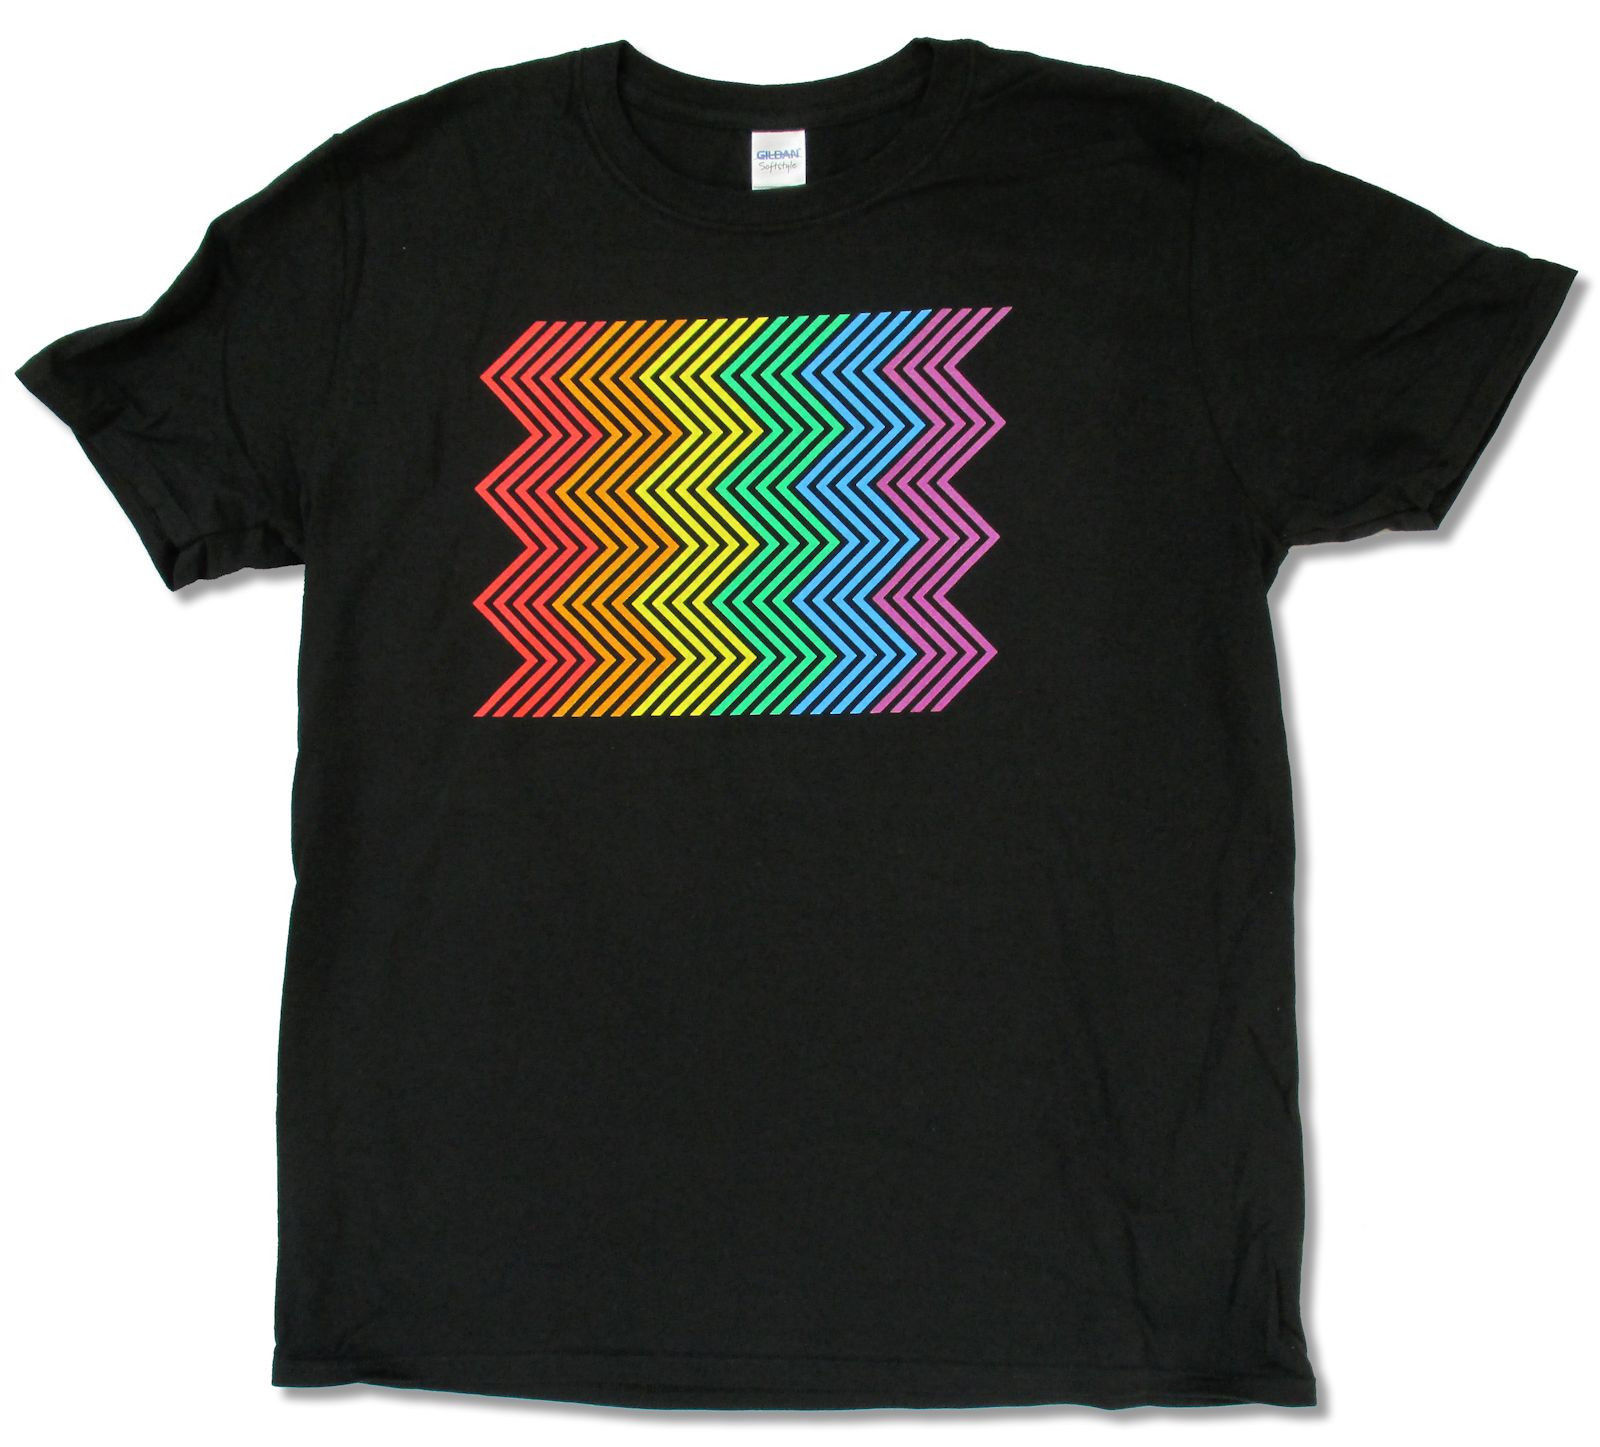 PET SHOP BOYS ELECTRIC RAINBOW TOUR 2014 BLACK T-SHIRT NEW OFFICIAL ADULT BAND Tees Brand Clothing Funny T-Shirt top tee